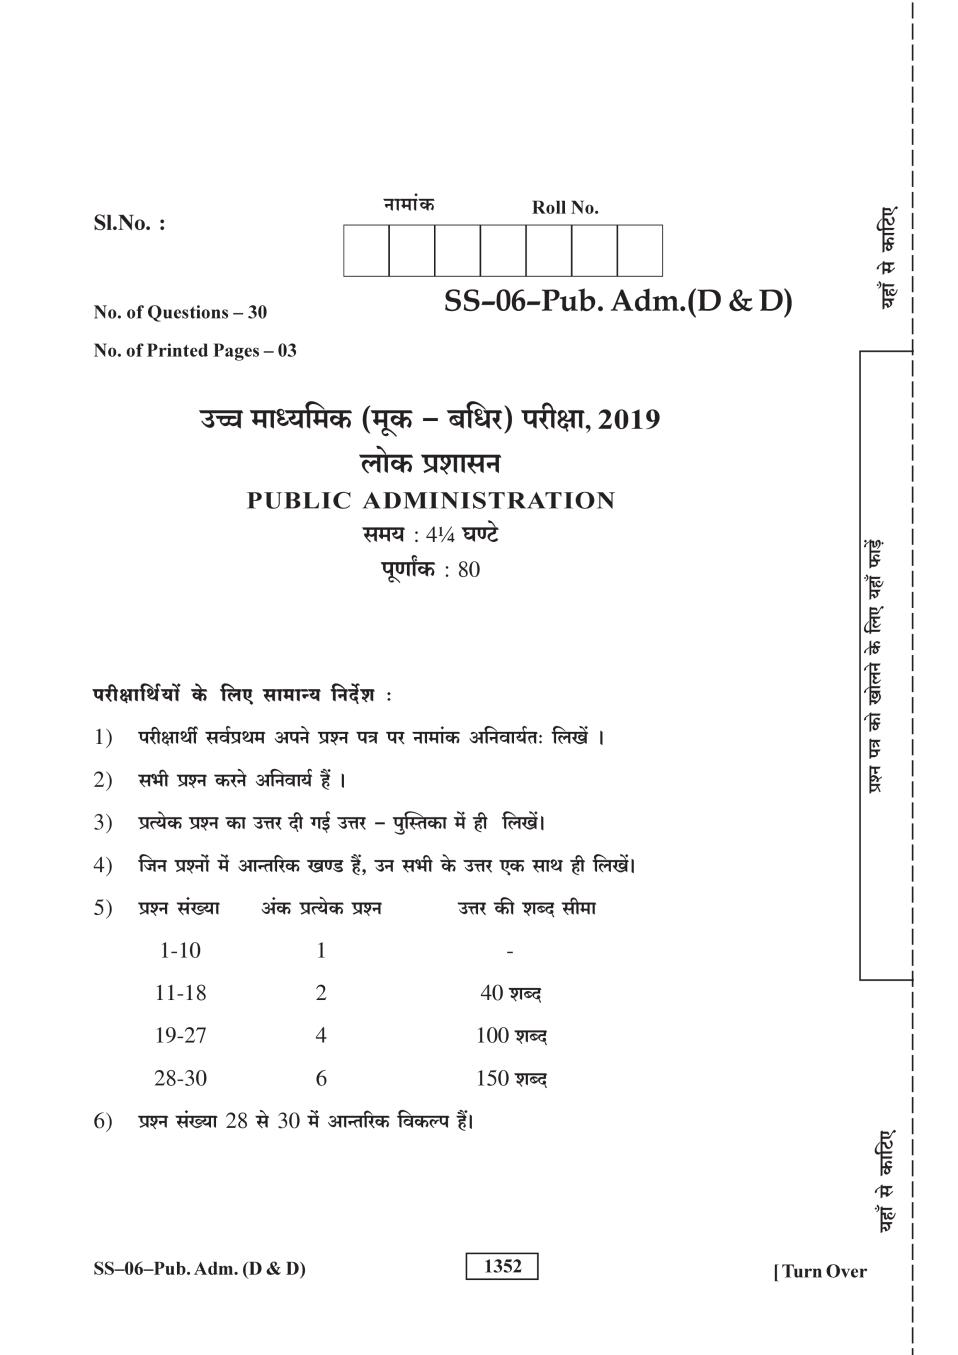 Rajasthan Board Sr. Secondary Pub. Adm (DD) Question Paper